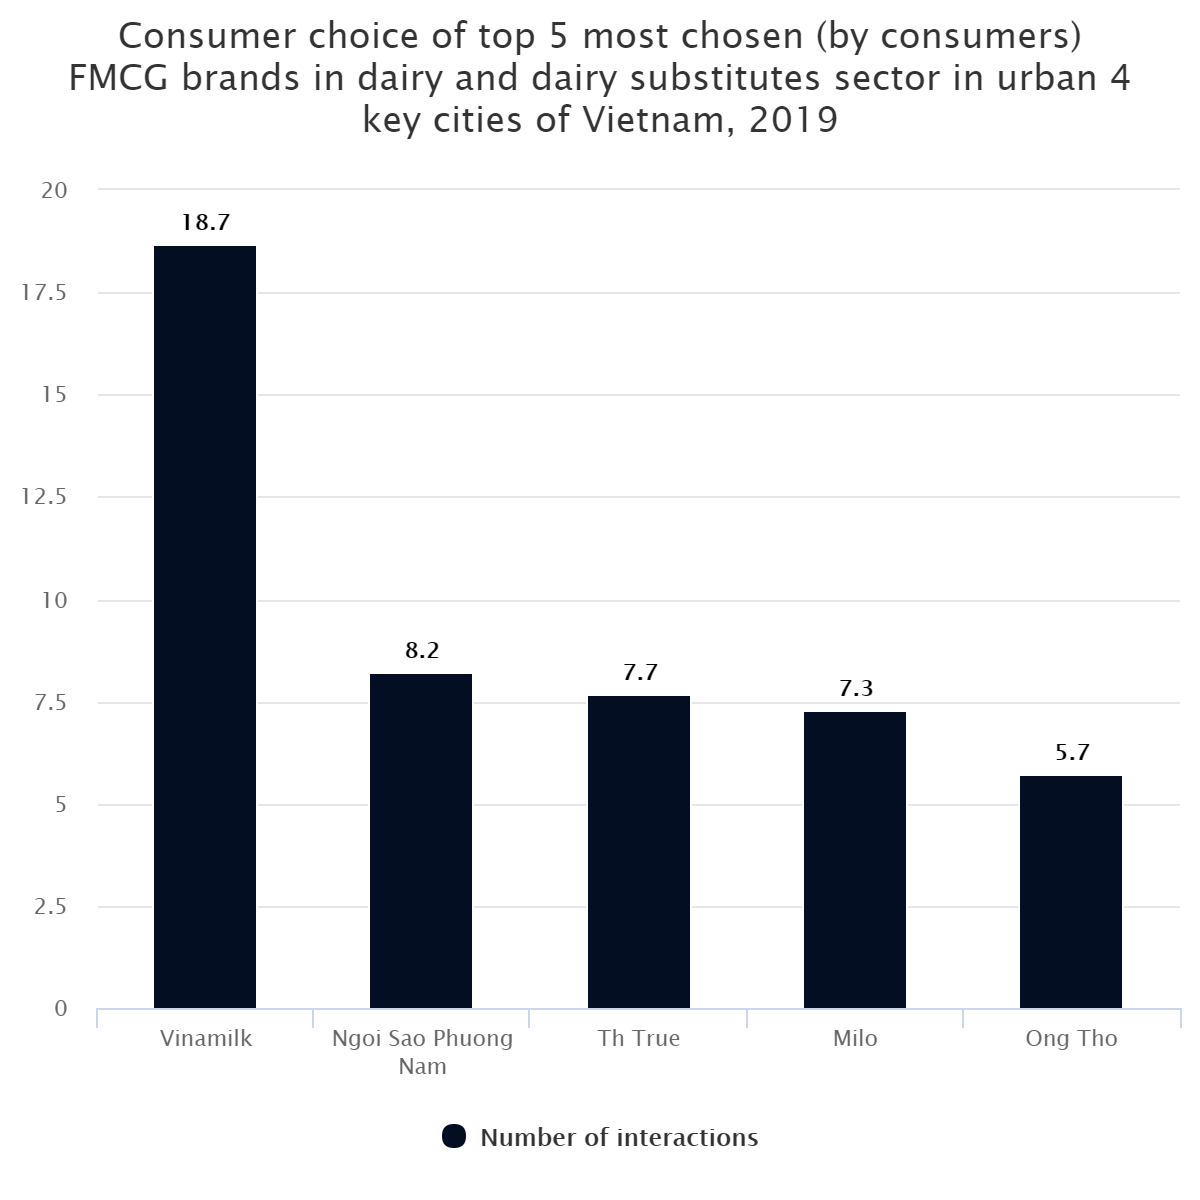 Consumer choice of top 5 most chosen (by consumers) FMCG brands in dairy and dairy substitutes sector in urban 4 key cities of Vietnam, 2019